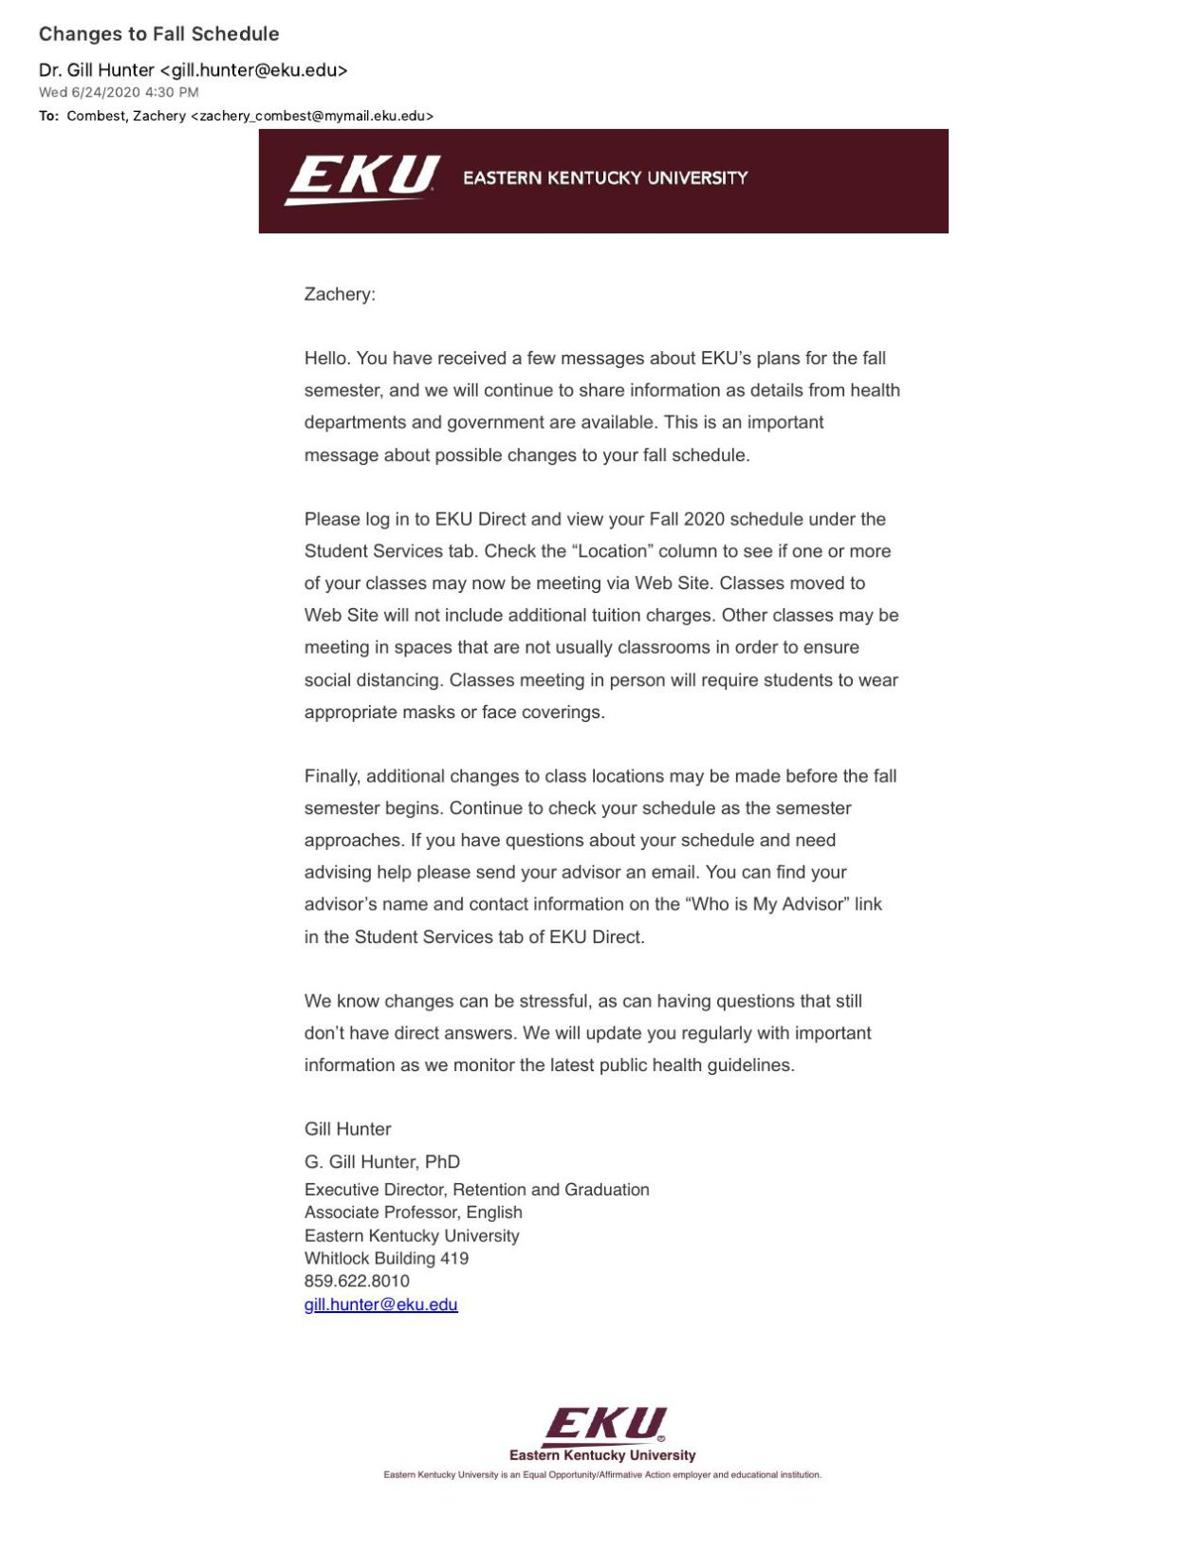 EKU moves some classes online for fall semester